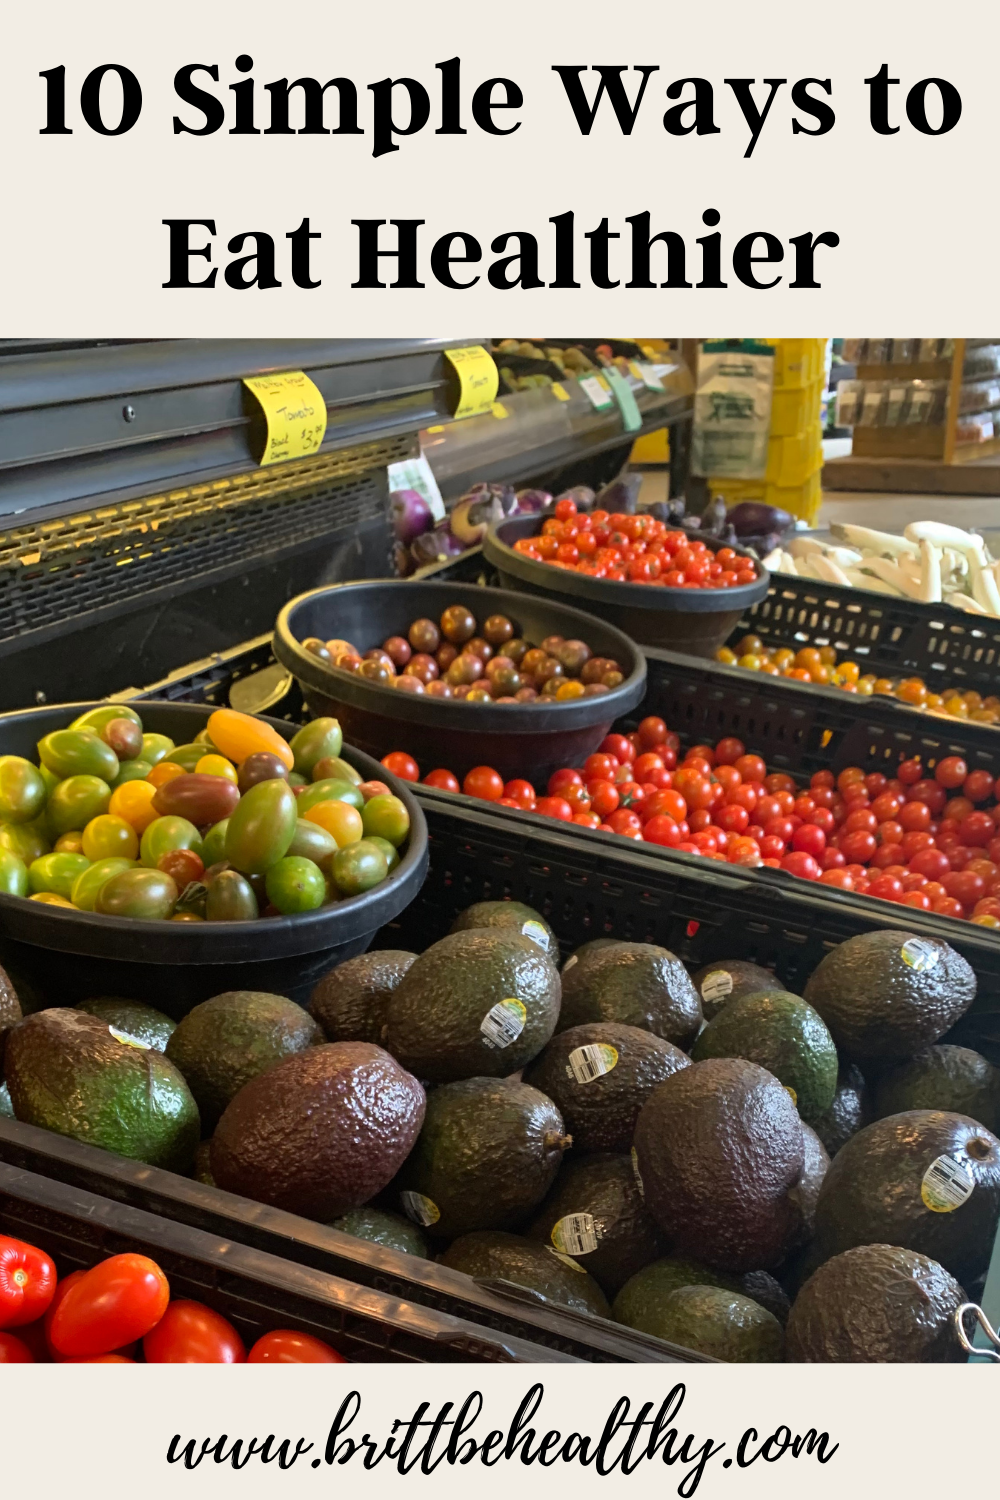 10 simple ways to eat healthier Pinterest image